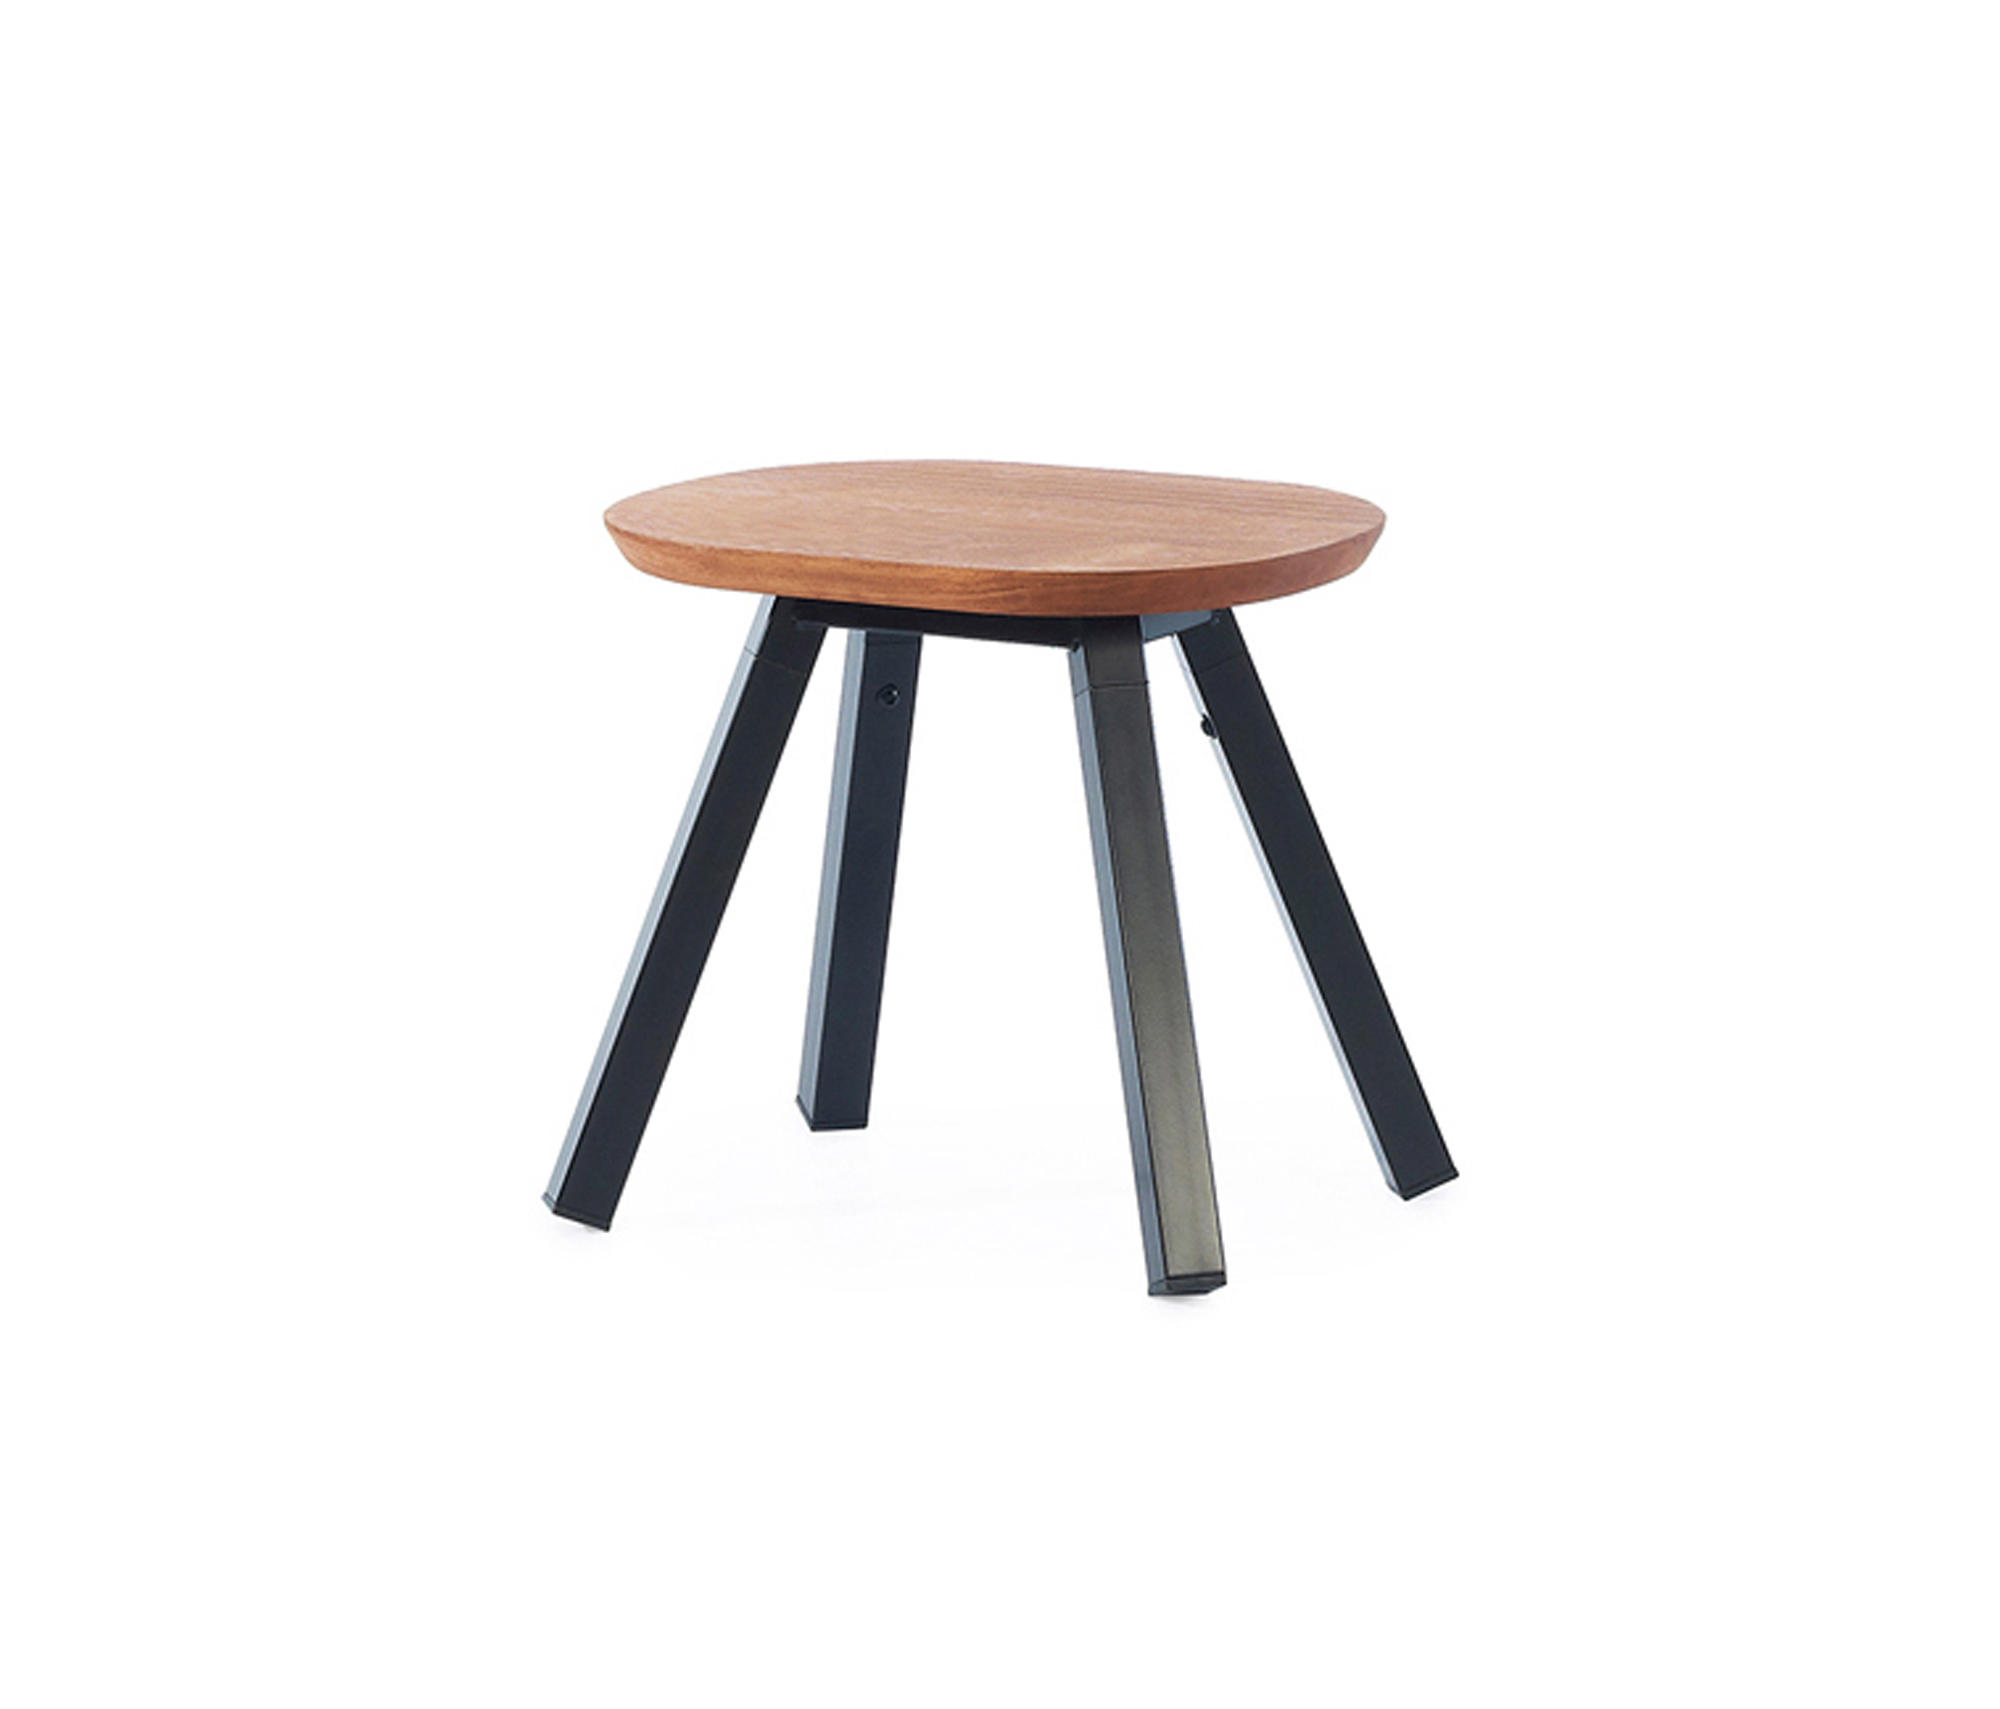 YOU AND ME 50 STOOL - Garden stools from RS Barcelona | Architonic